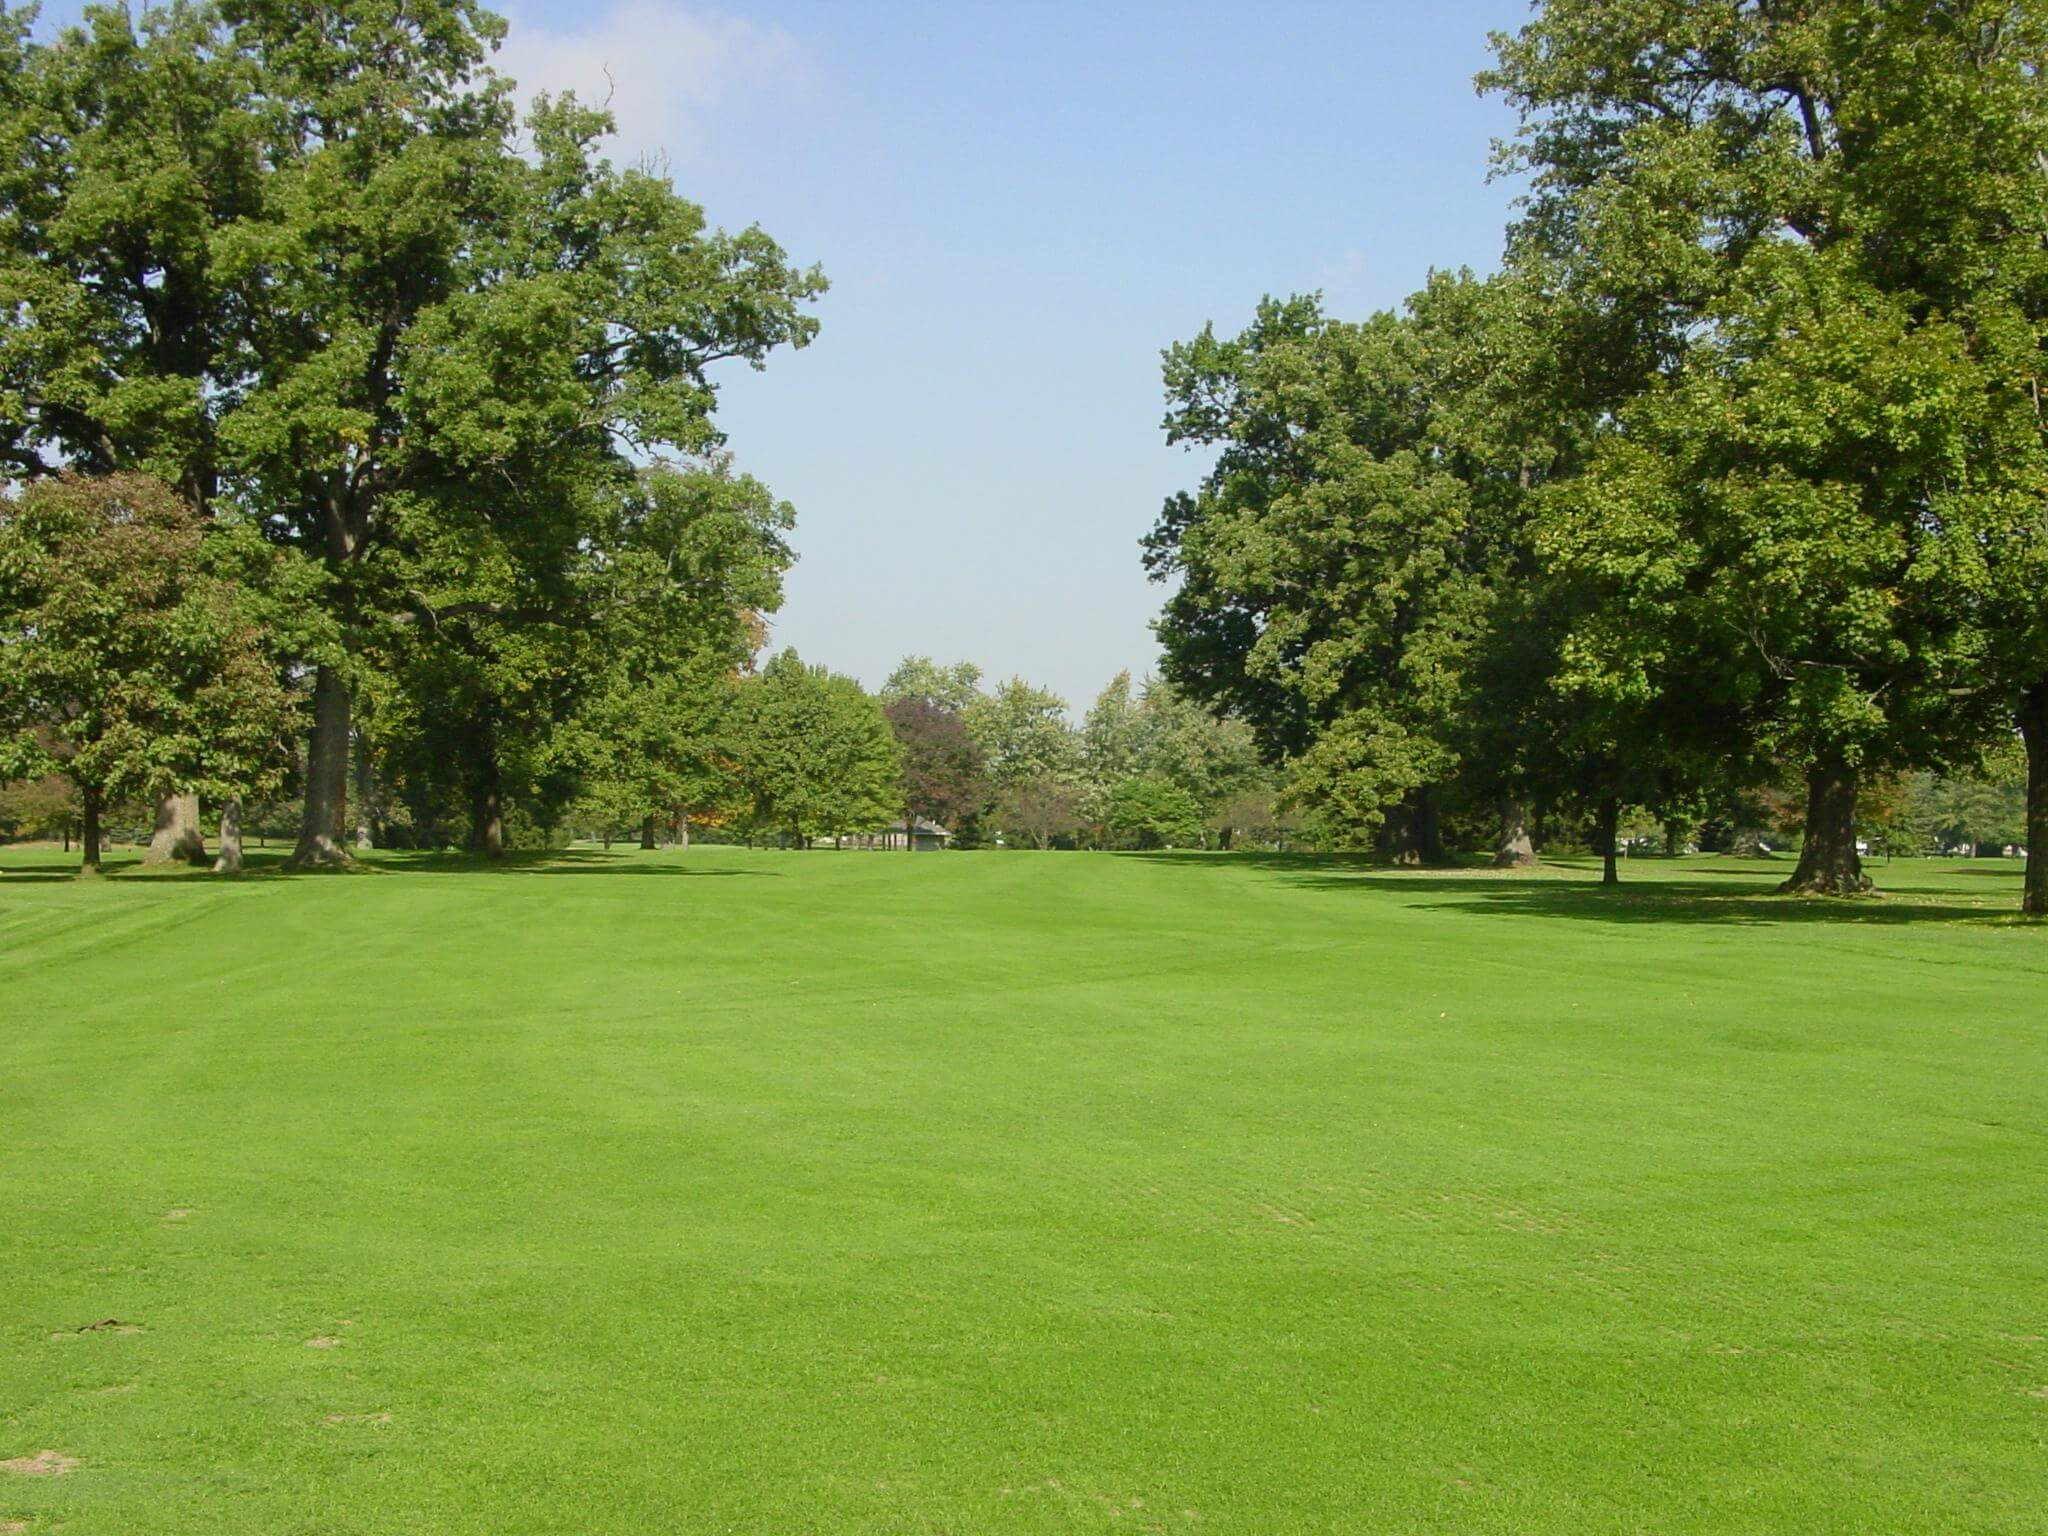 Hole 14 on the golf course